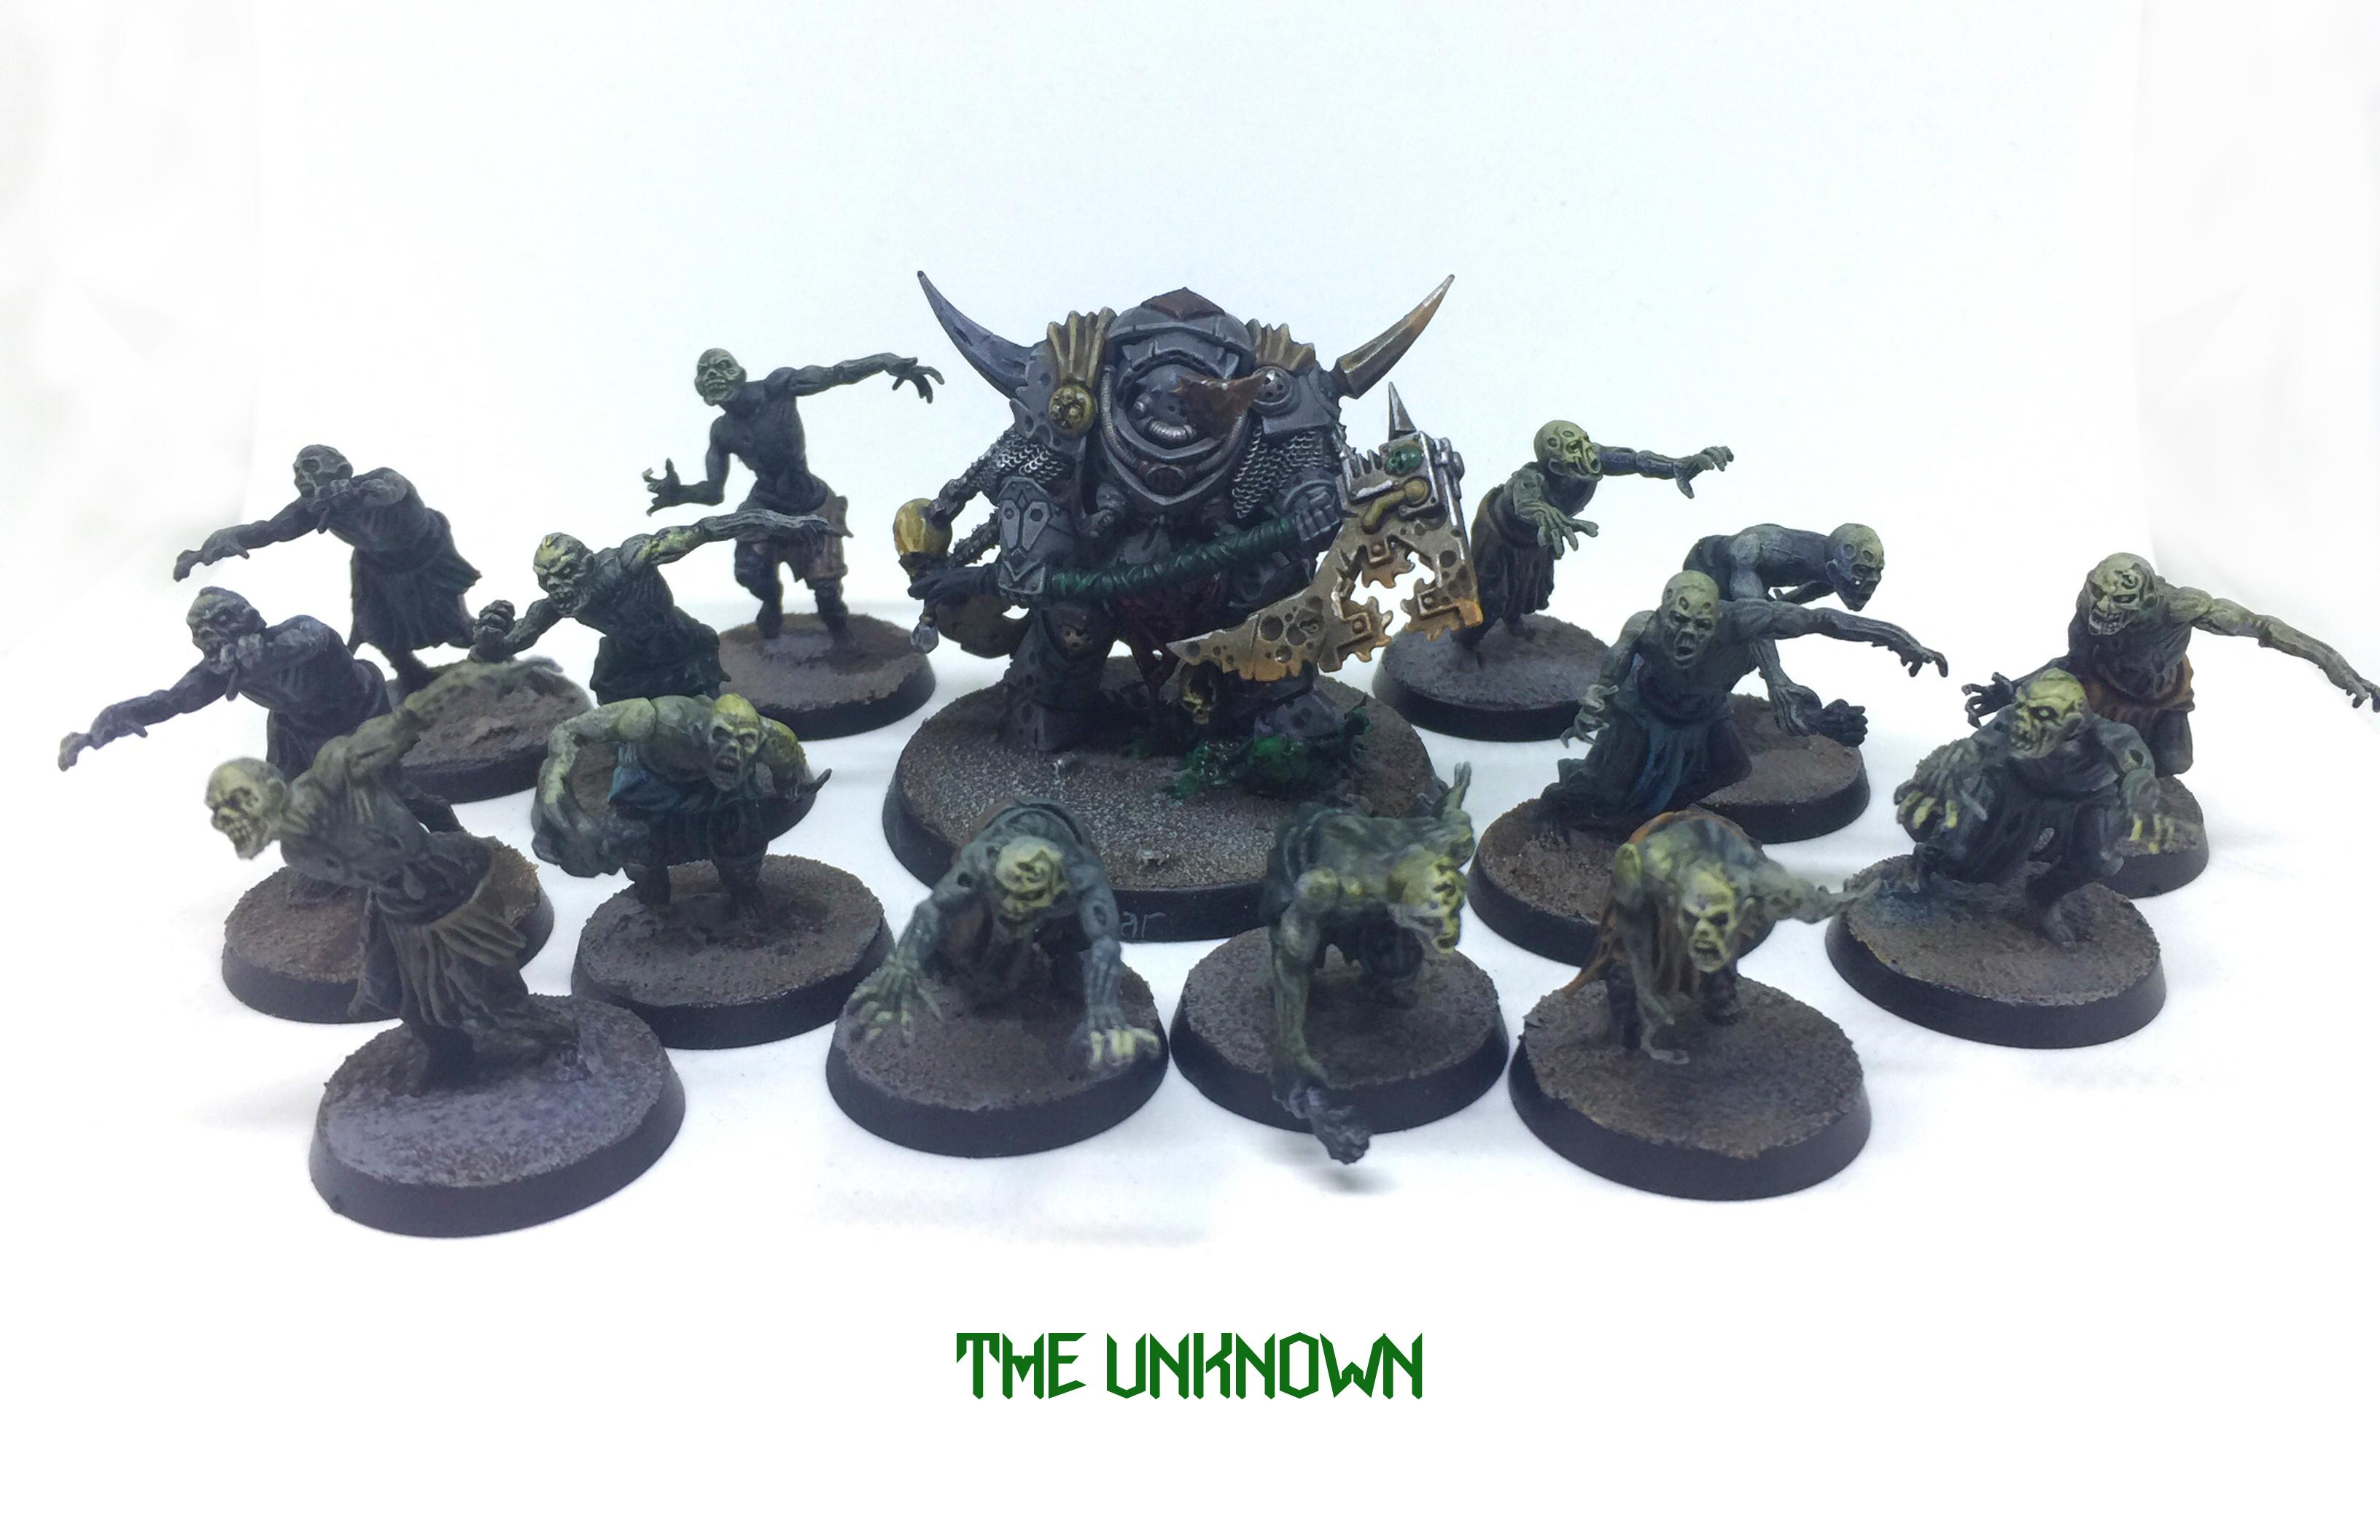 Chaos Lord, Chaos Space Marines, Dark Imperium, Death Guard, Lord Of Contagion, Nurgle, Plague Zombies, Poxwalkers, Terminator Armor, Warhammer 40,000